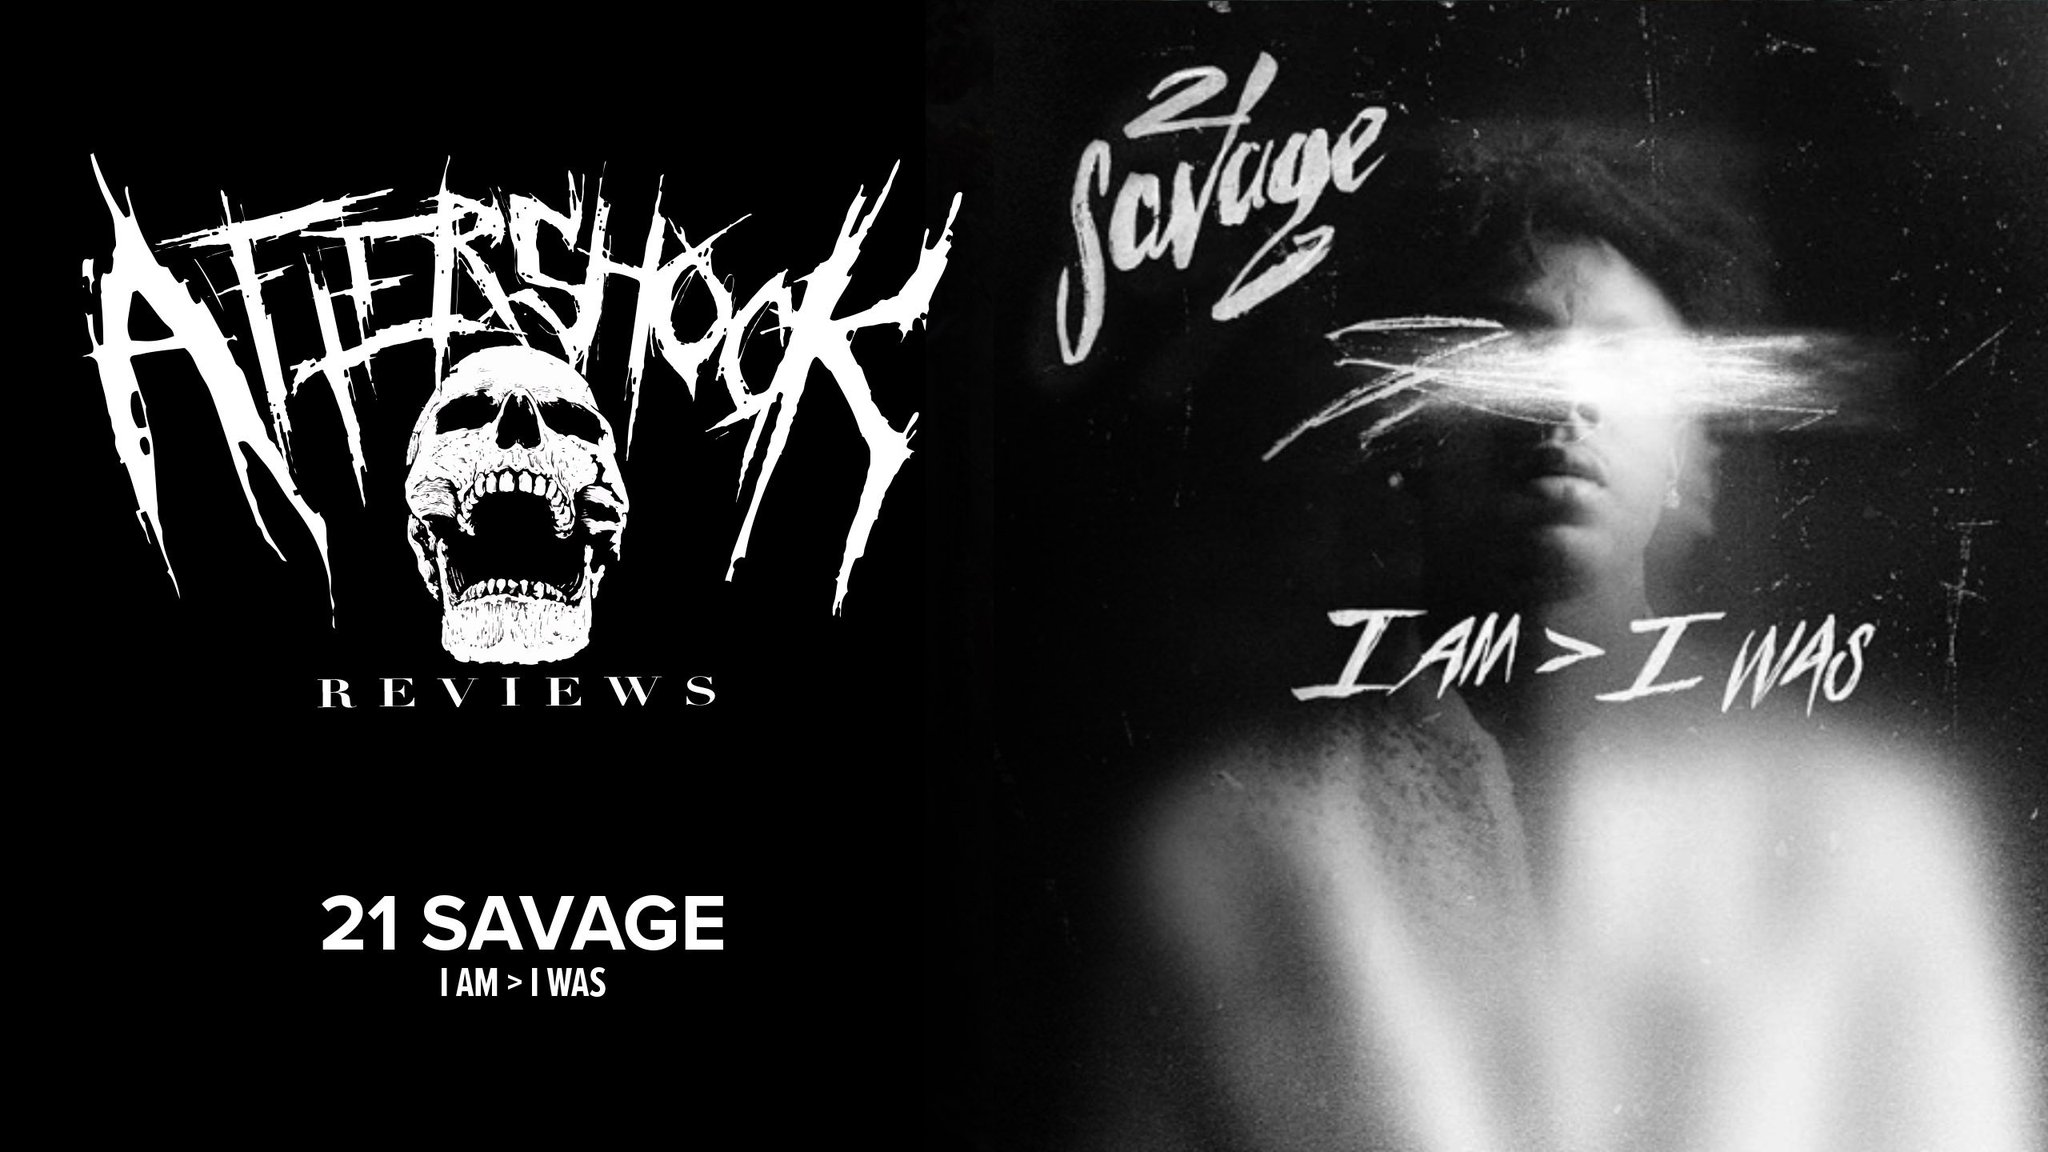 nic rattlehead on twitter oh it s time 21 savage 21savage review for his new album i am i was is dropping this friday on aftershock reviews aftershockrevi2 heck yes 21savage twitter